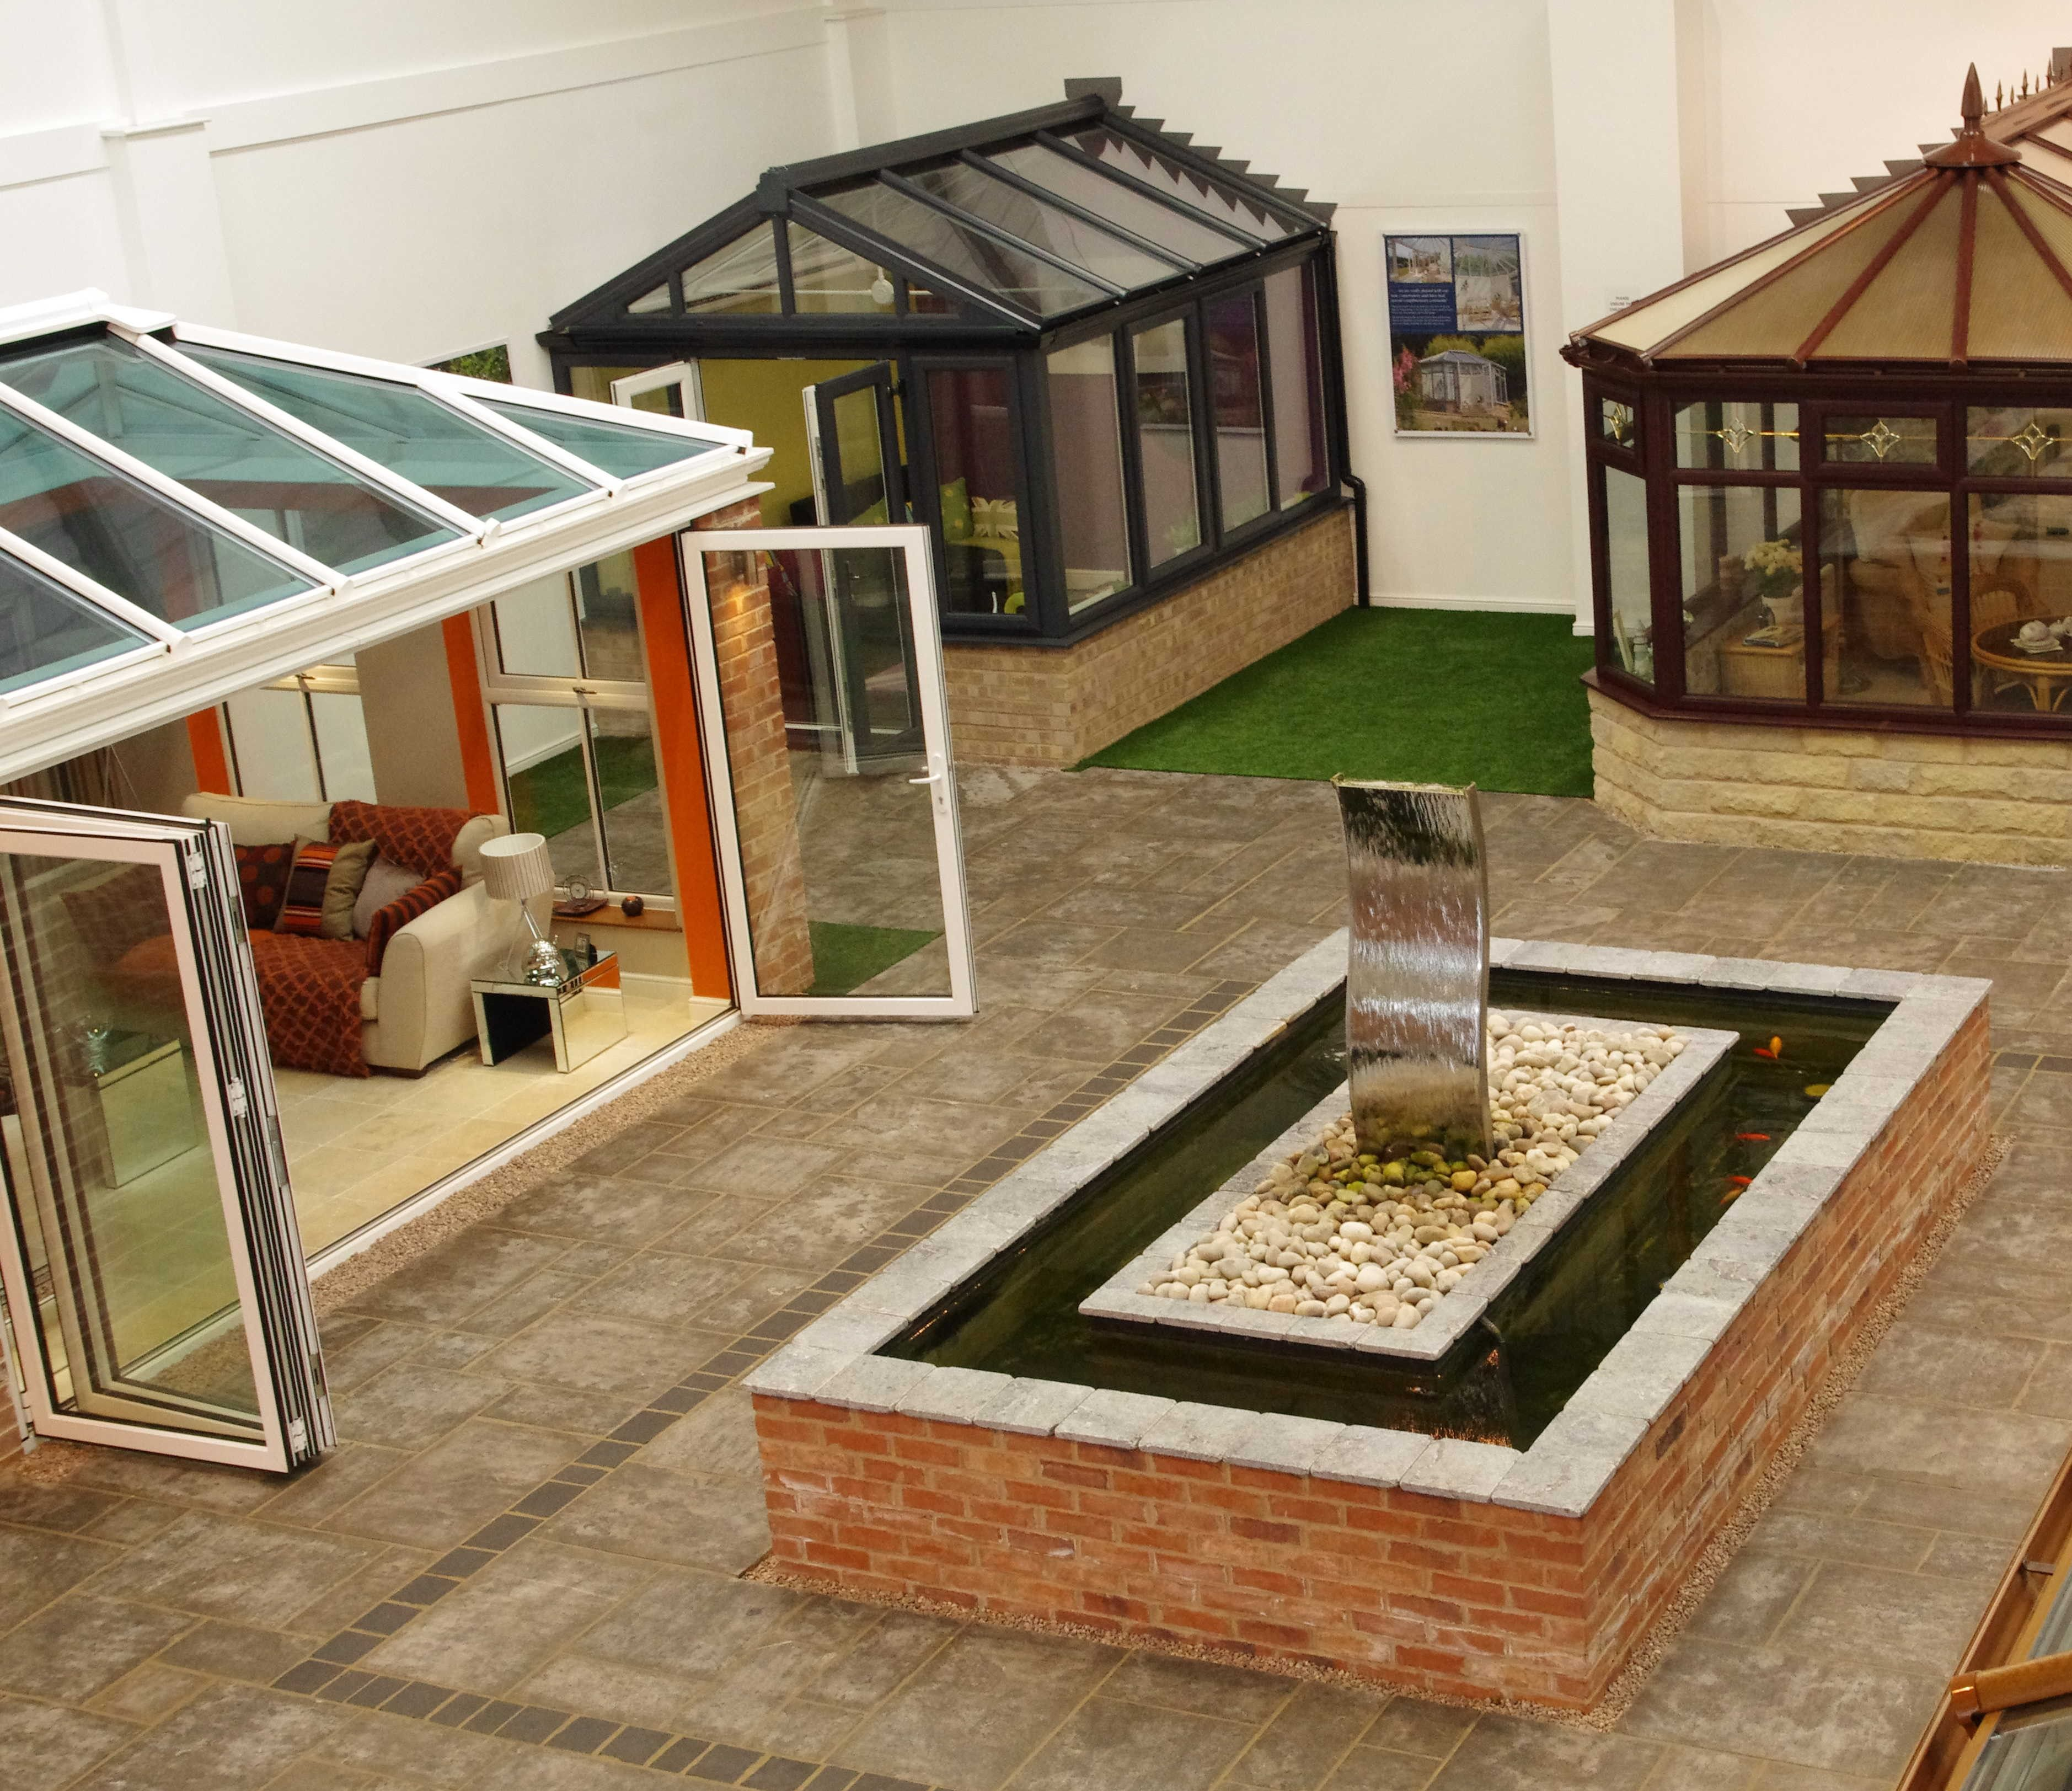 Visit our showrooms in Doncaster or Wakefield to see our